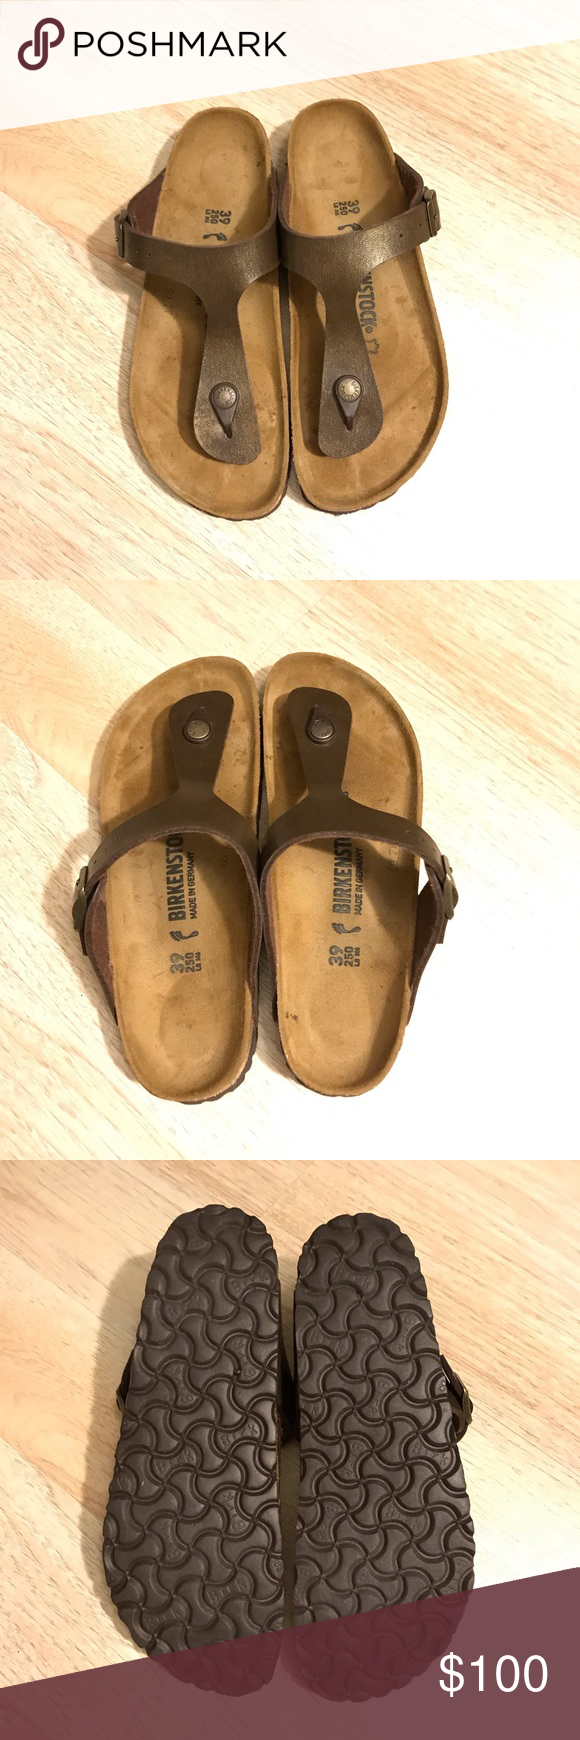 b07cee6acff New without box Birkenstock Gizeh size 39 NEW Birkenstock Gizeh Oiled  leather Tobacco Brown size 39 Birkenstock Shoes